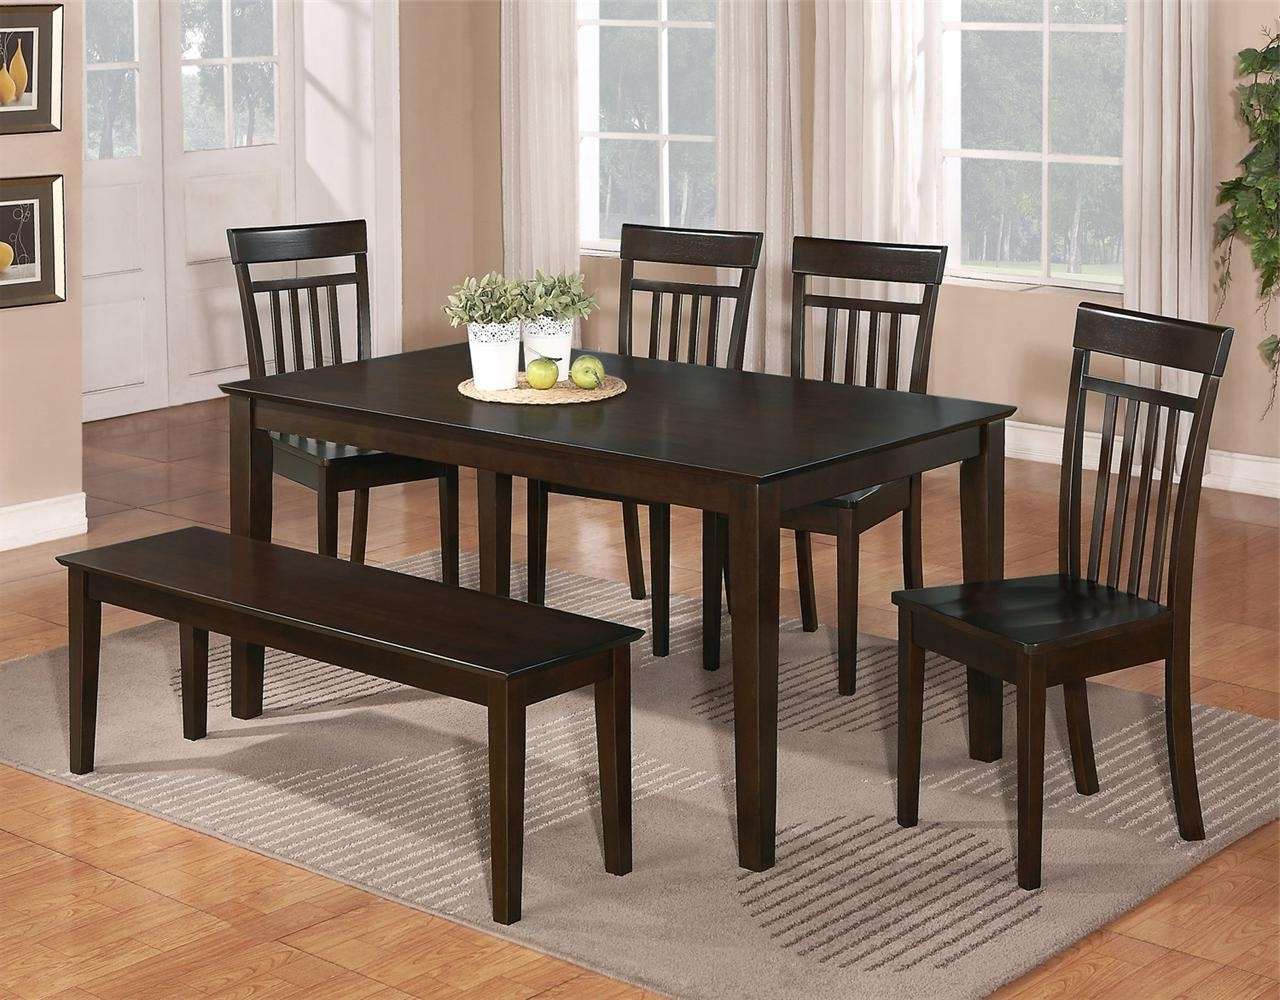 6 Pc Dinette Kitchen Dining Room Set Table W/4 Wood Chair, Dining With Trendy Small Dining Tables And Bench Sets (View 25 of 25)